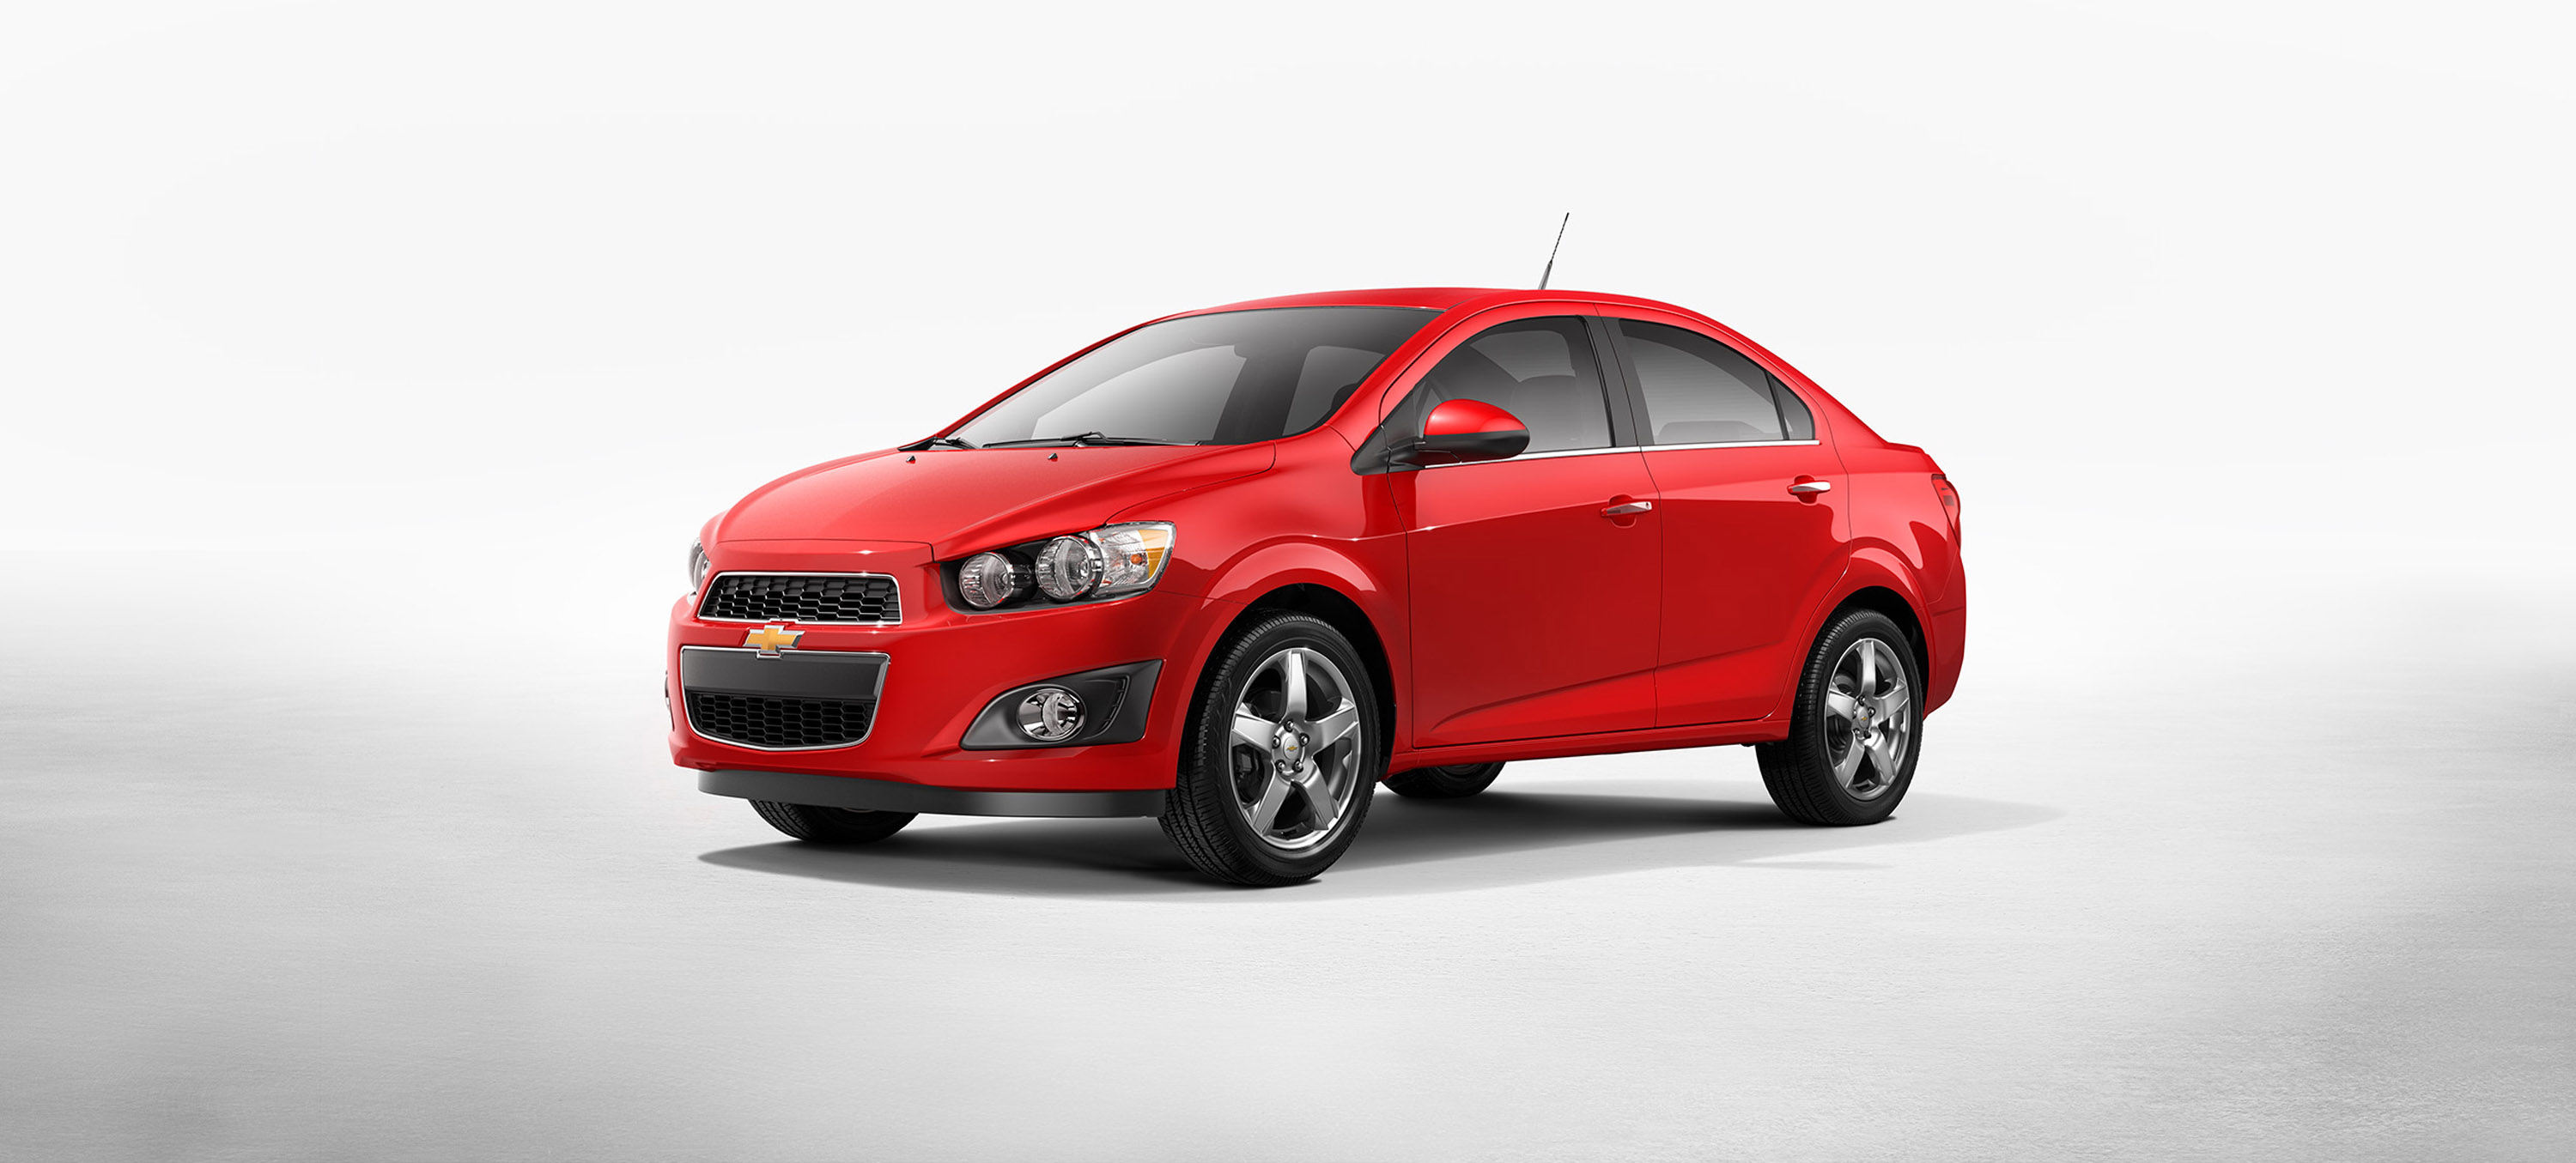 2015 chevrolet sonic small overlap iihs crash test. Black Bedroom Furniture Sets. Home Design Ideas